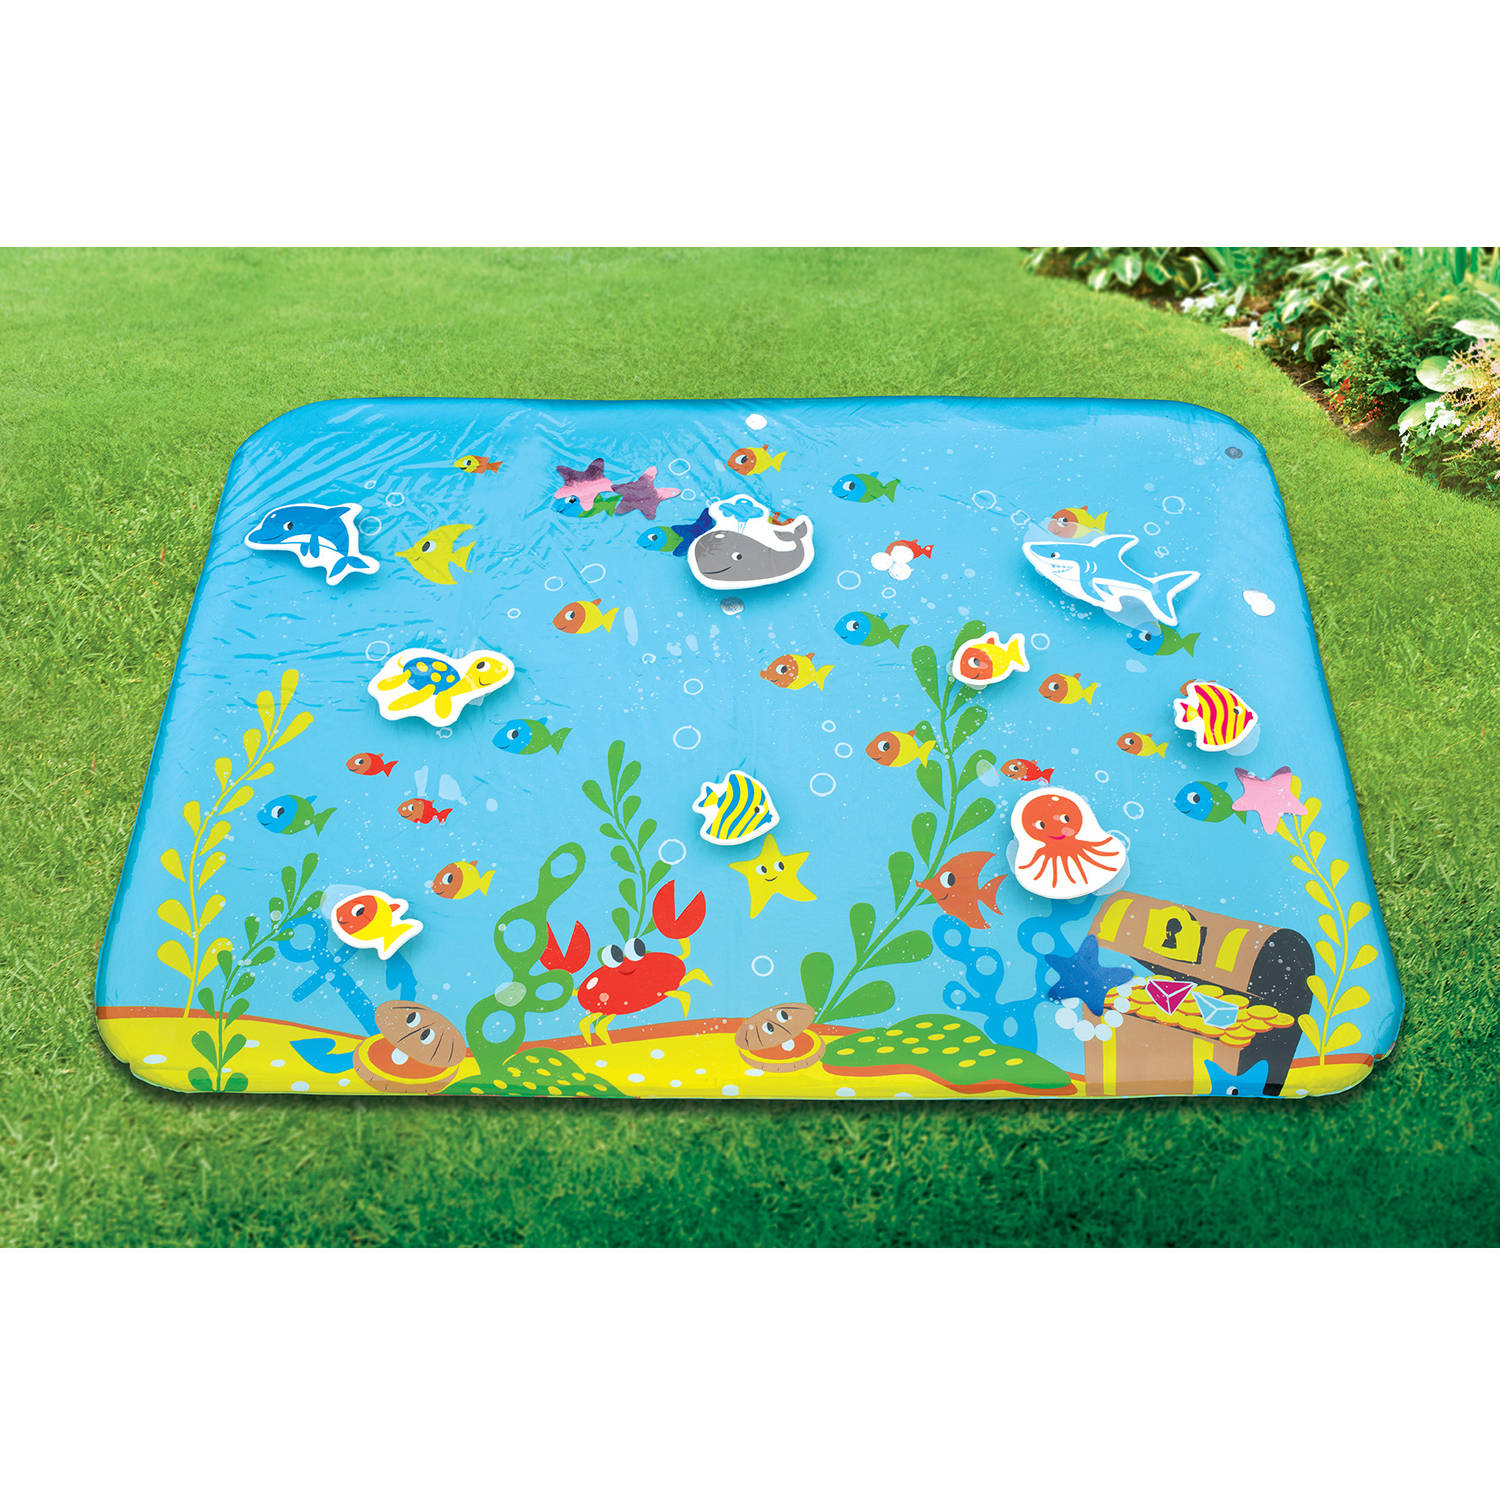 Outdoor Play Mats Top Outdoor Play Mats Images Children Toys Ideas